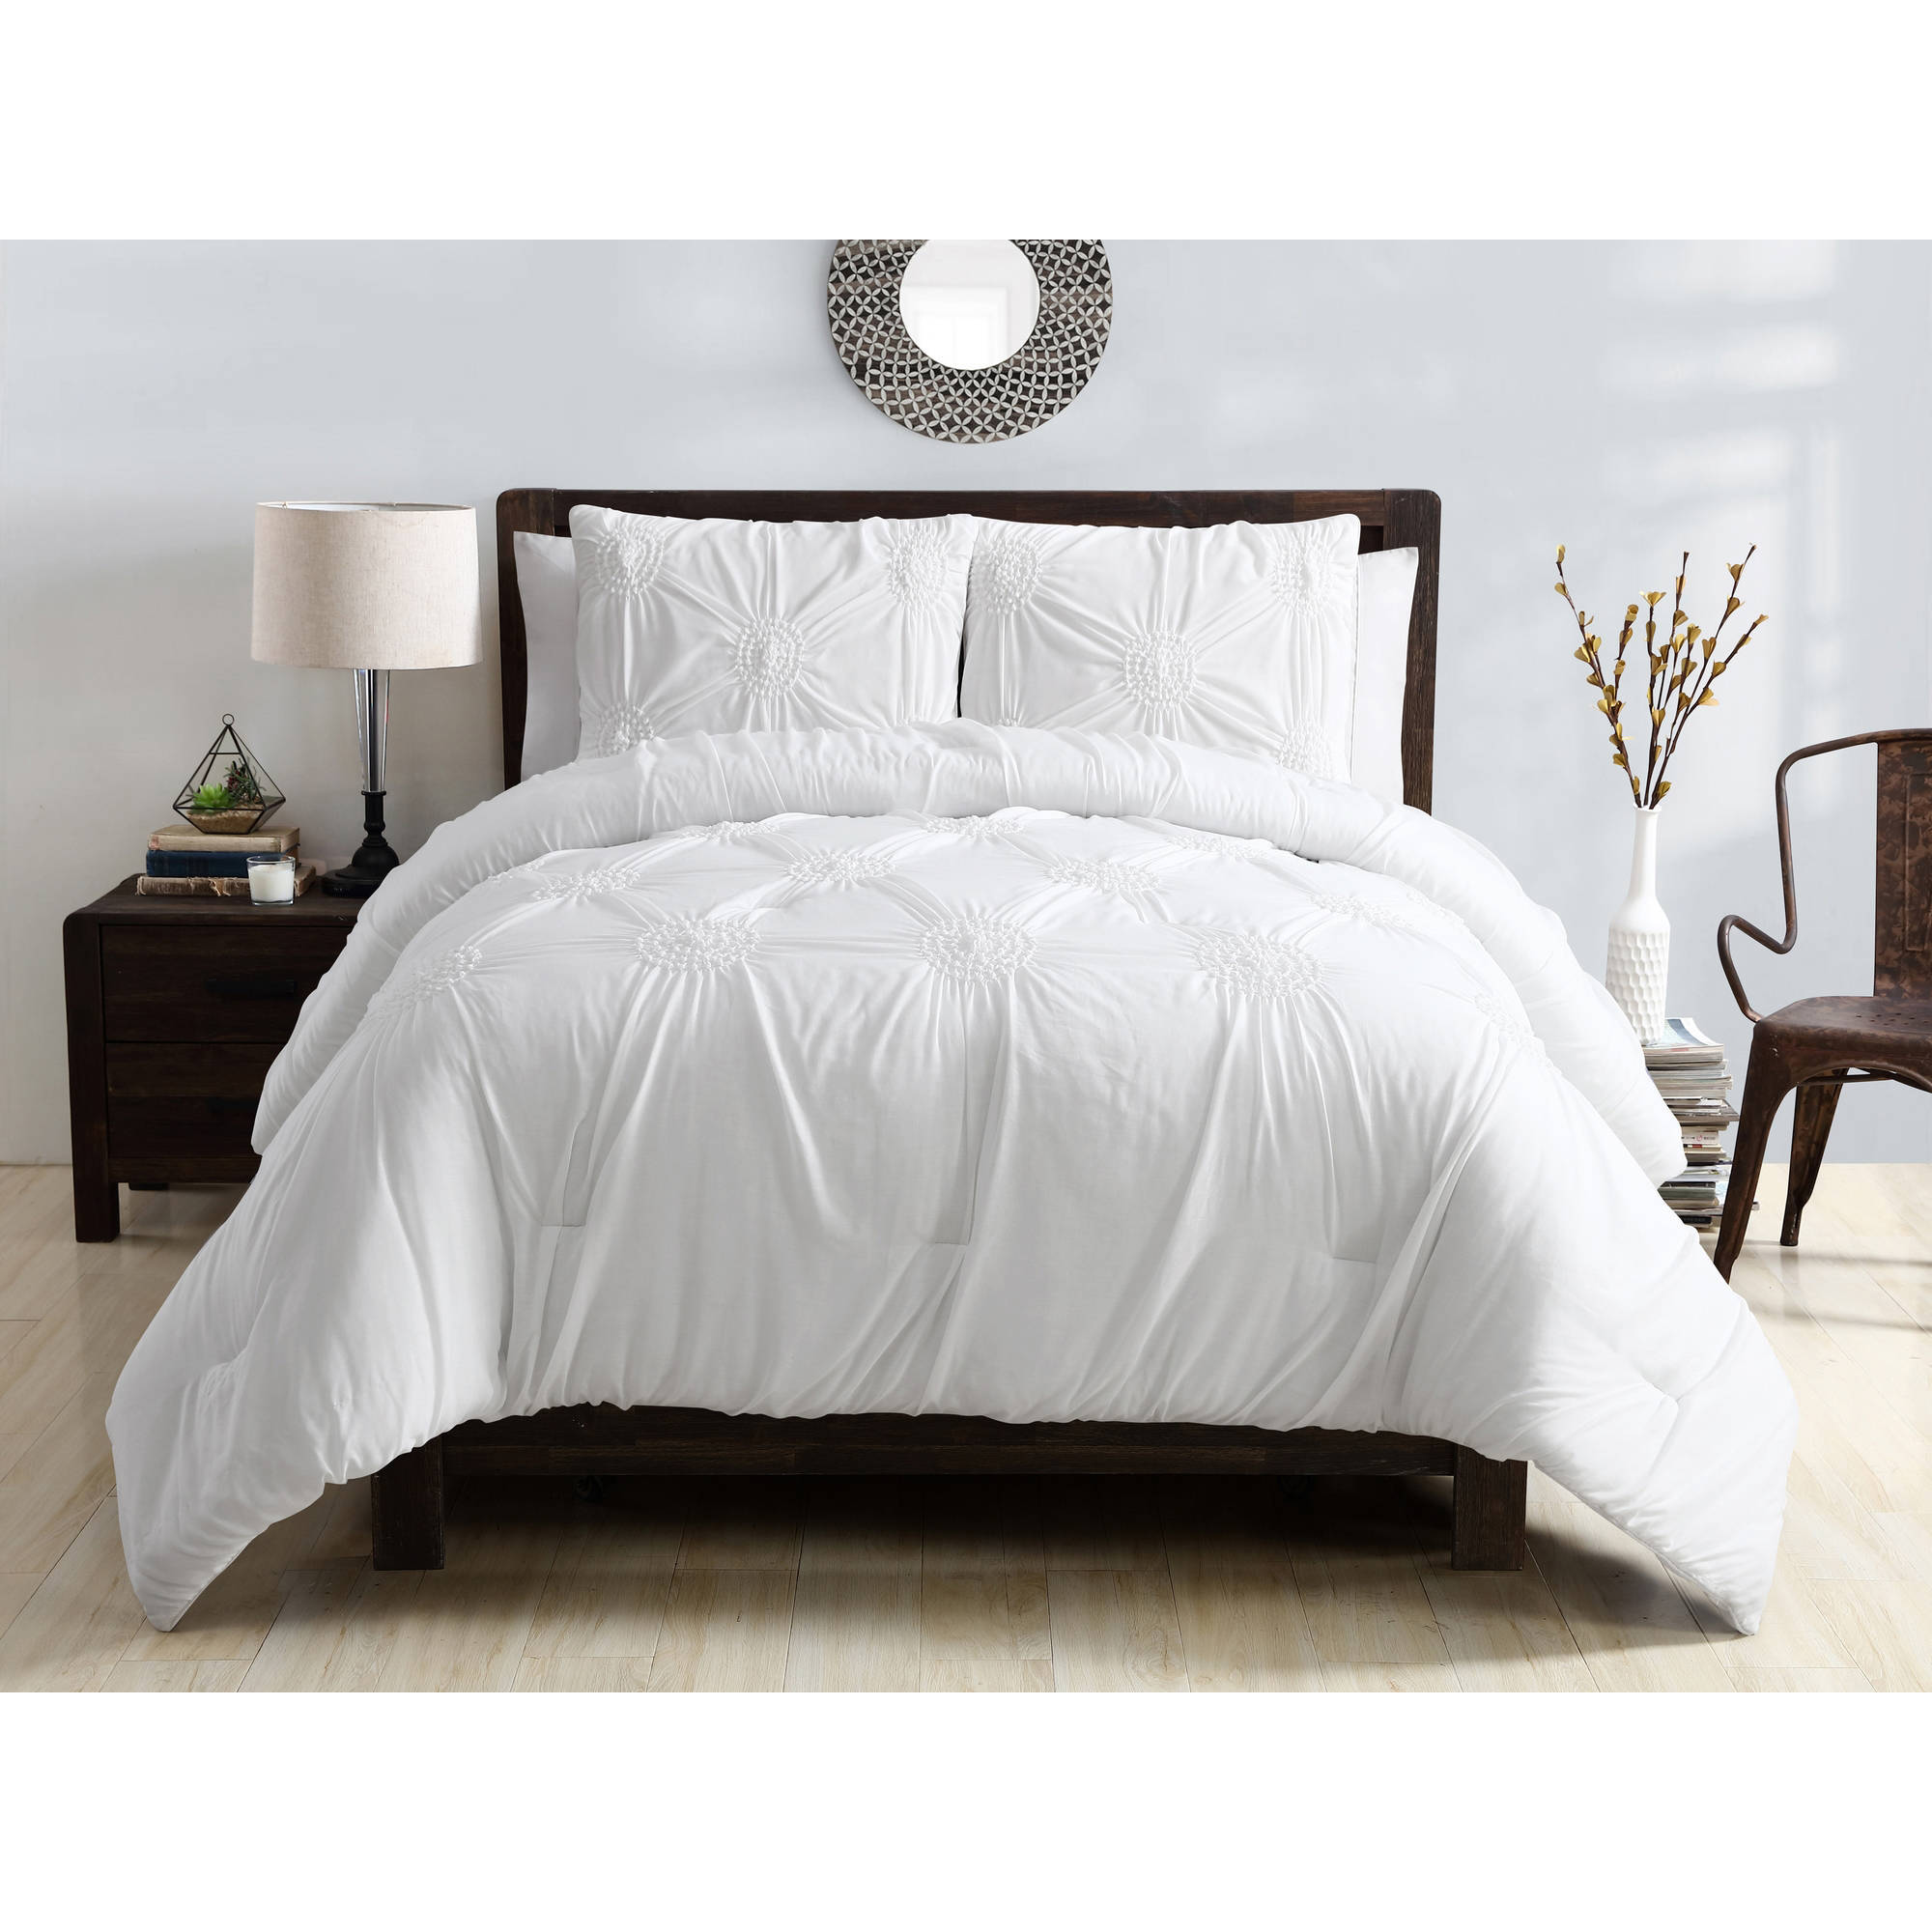 ***DISCONTINUED*** VCNY Home Floral Technique Jenelle 3 Piece Bedding Comforter Set, Shams Included, Multiple Colors and Sizes Available